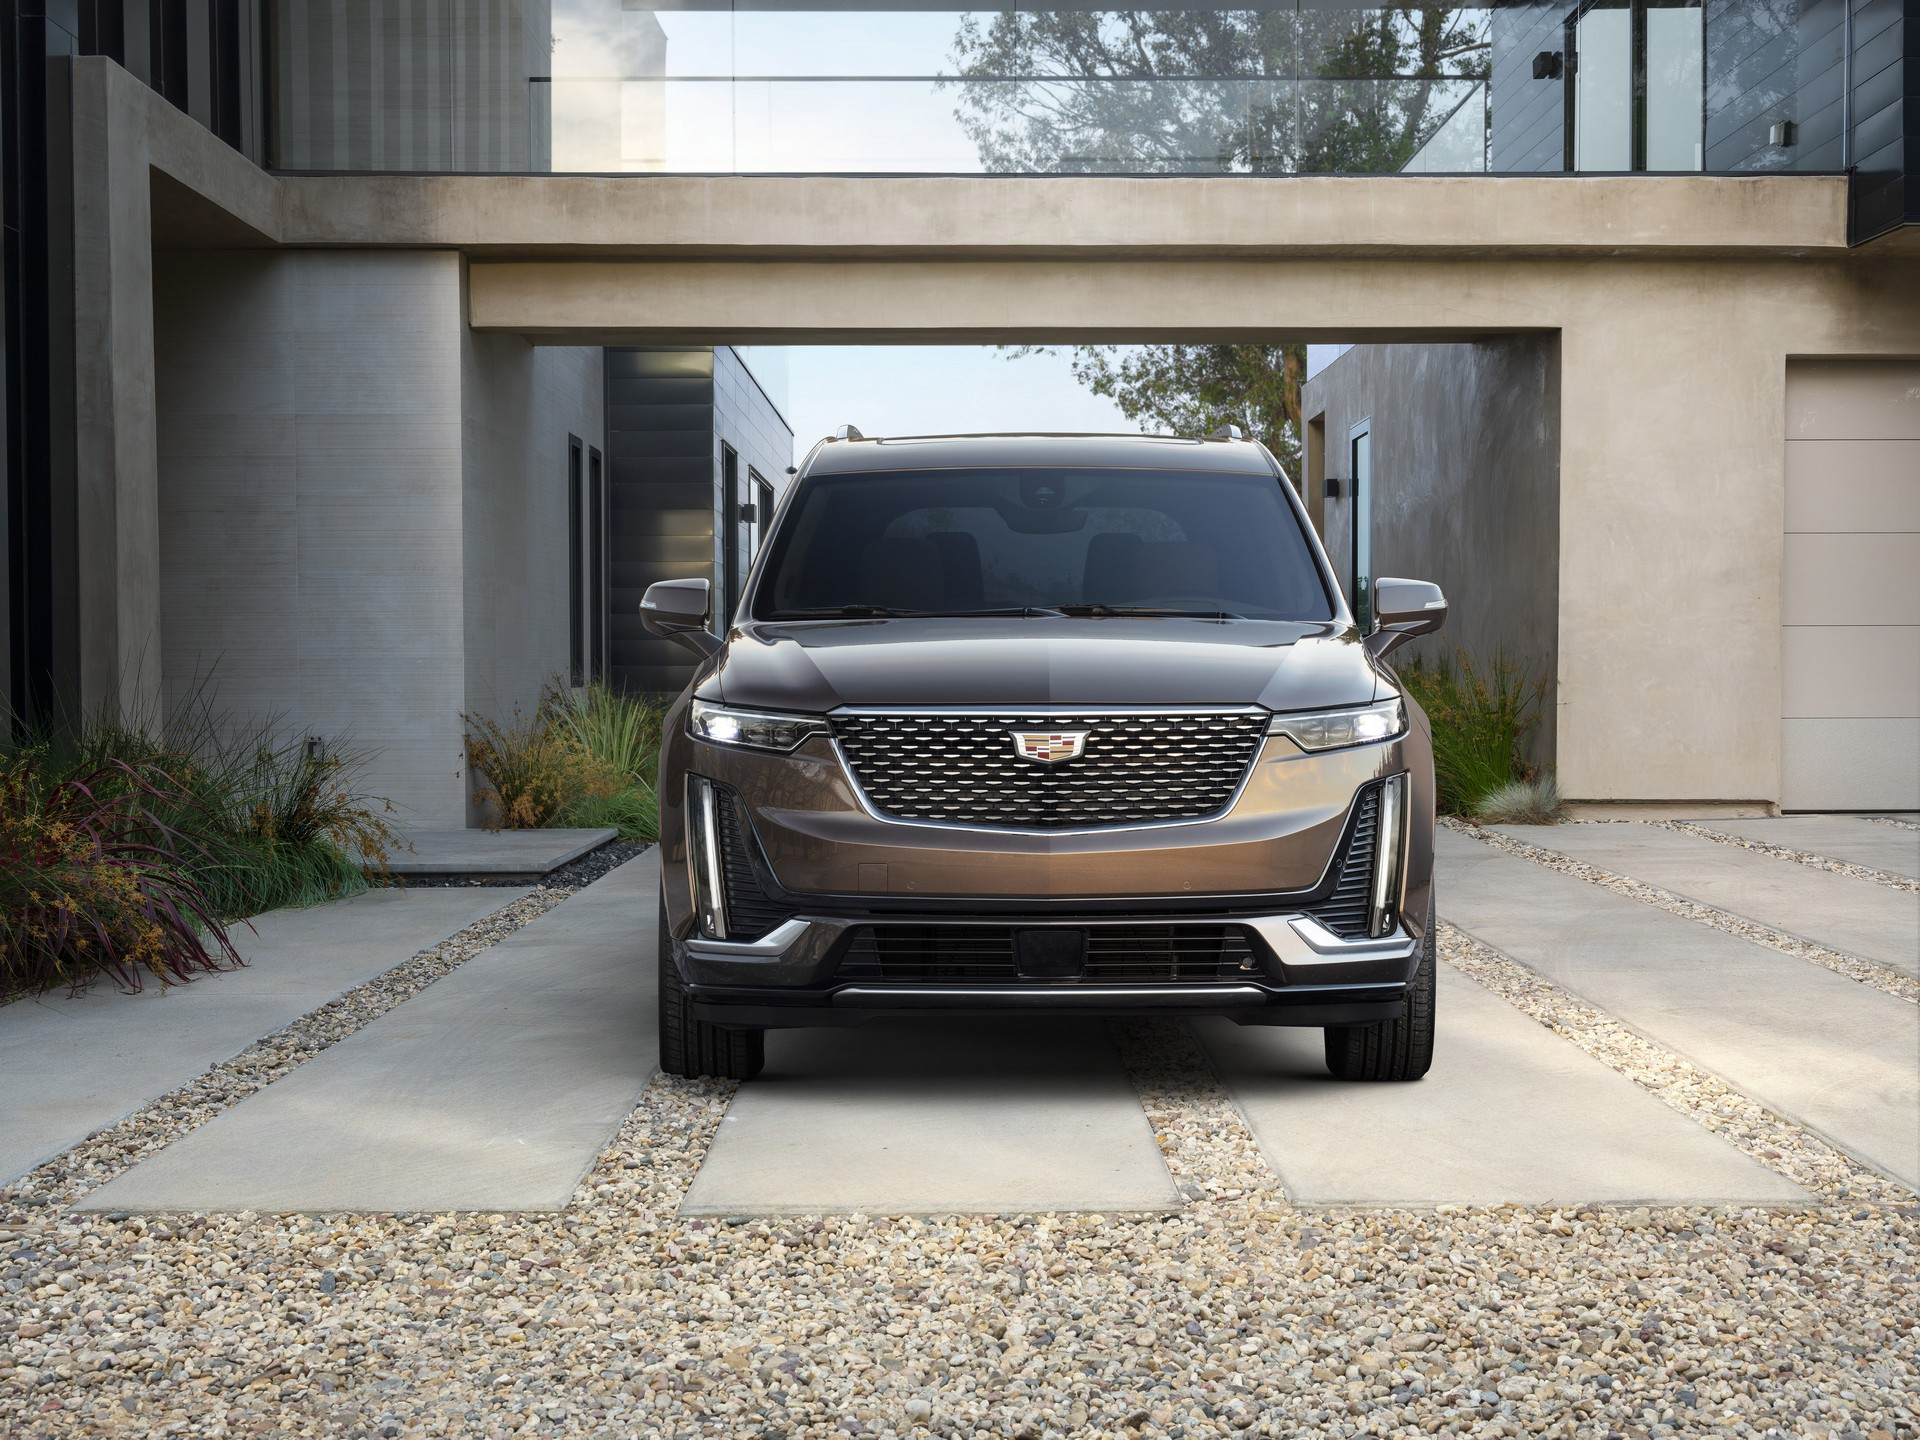 GM shows off images of Tesla rivalling all-electric SUV from Cadillac